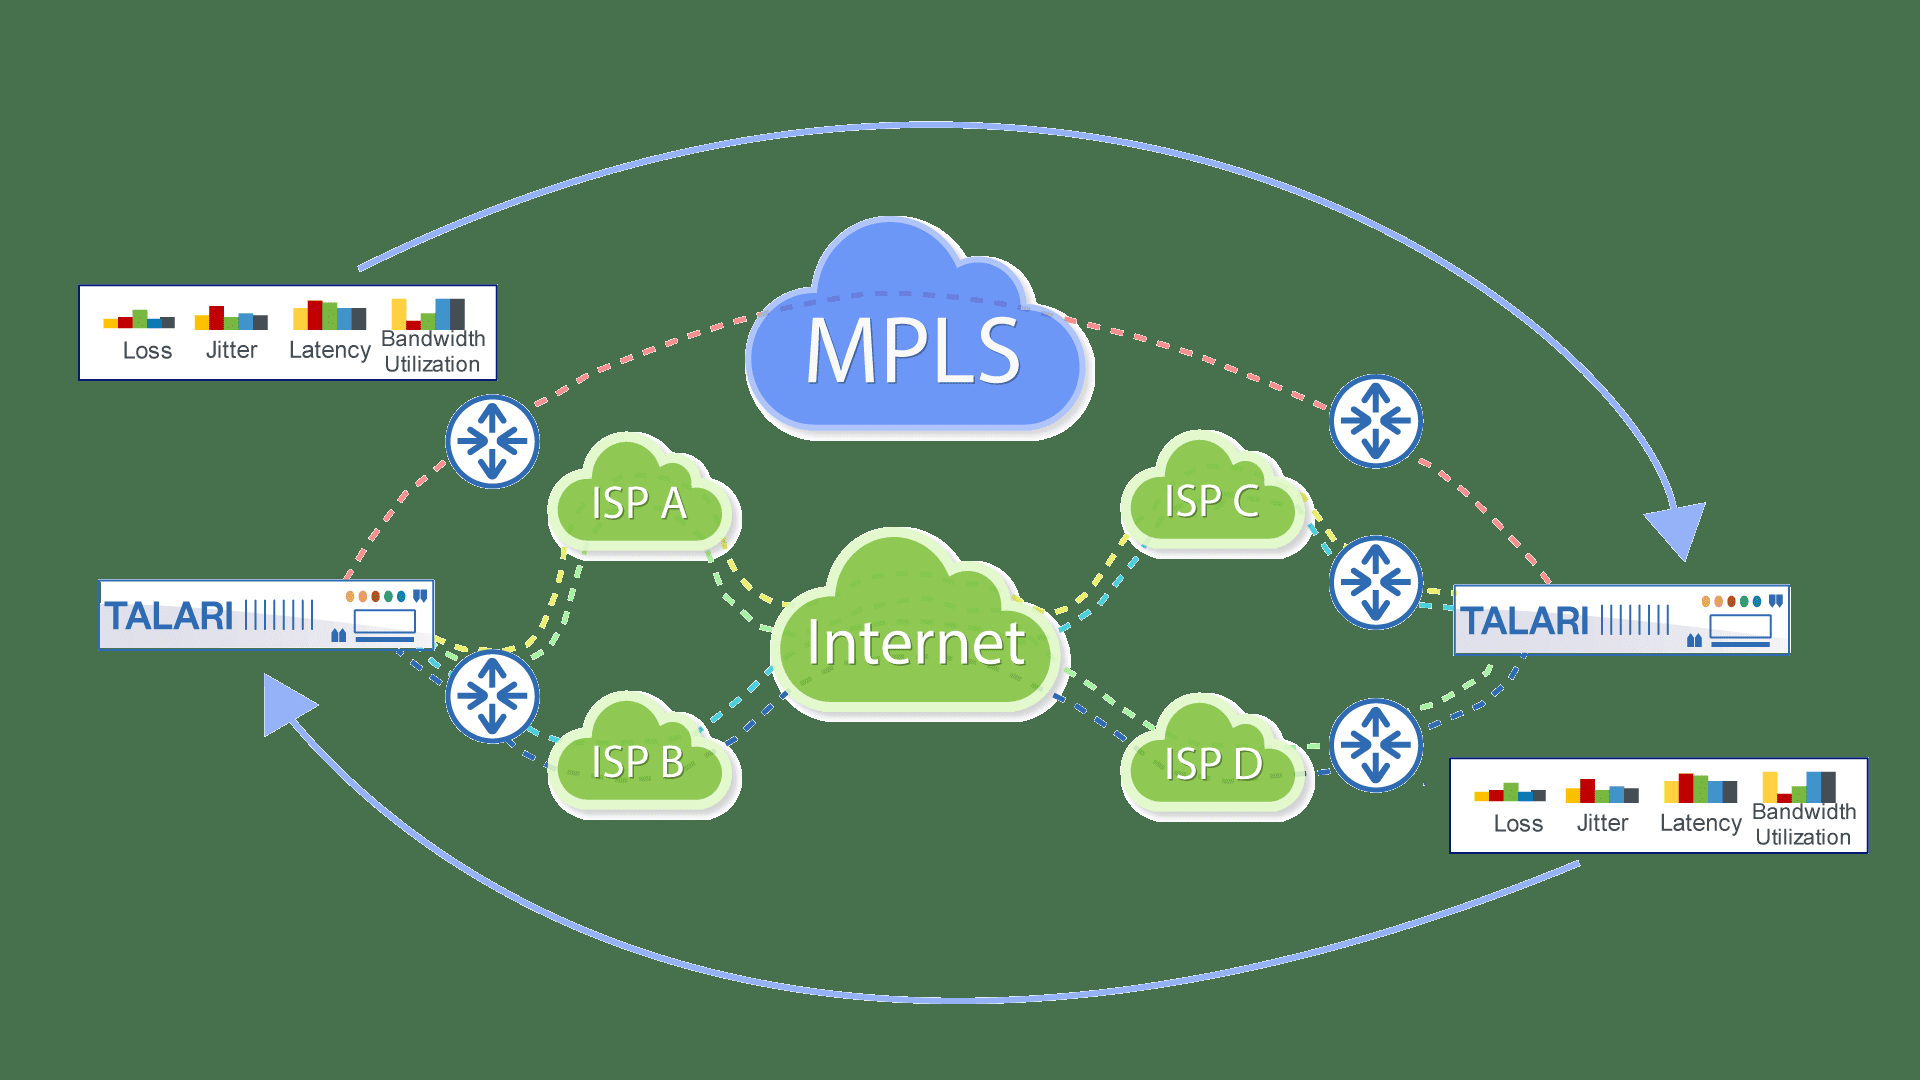 Mpls Network Diagram Coming Fresh To An Sd Wan Company An Interview With Talari Networks